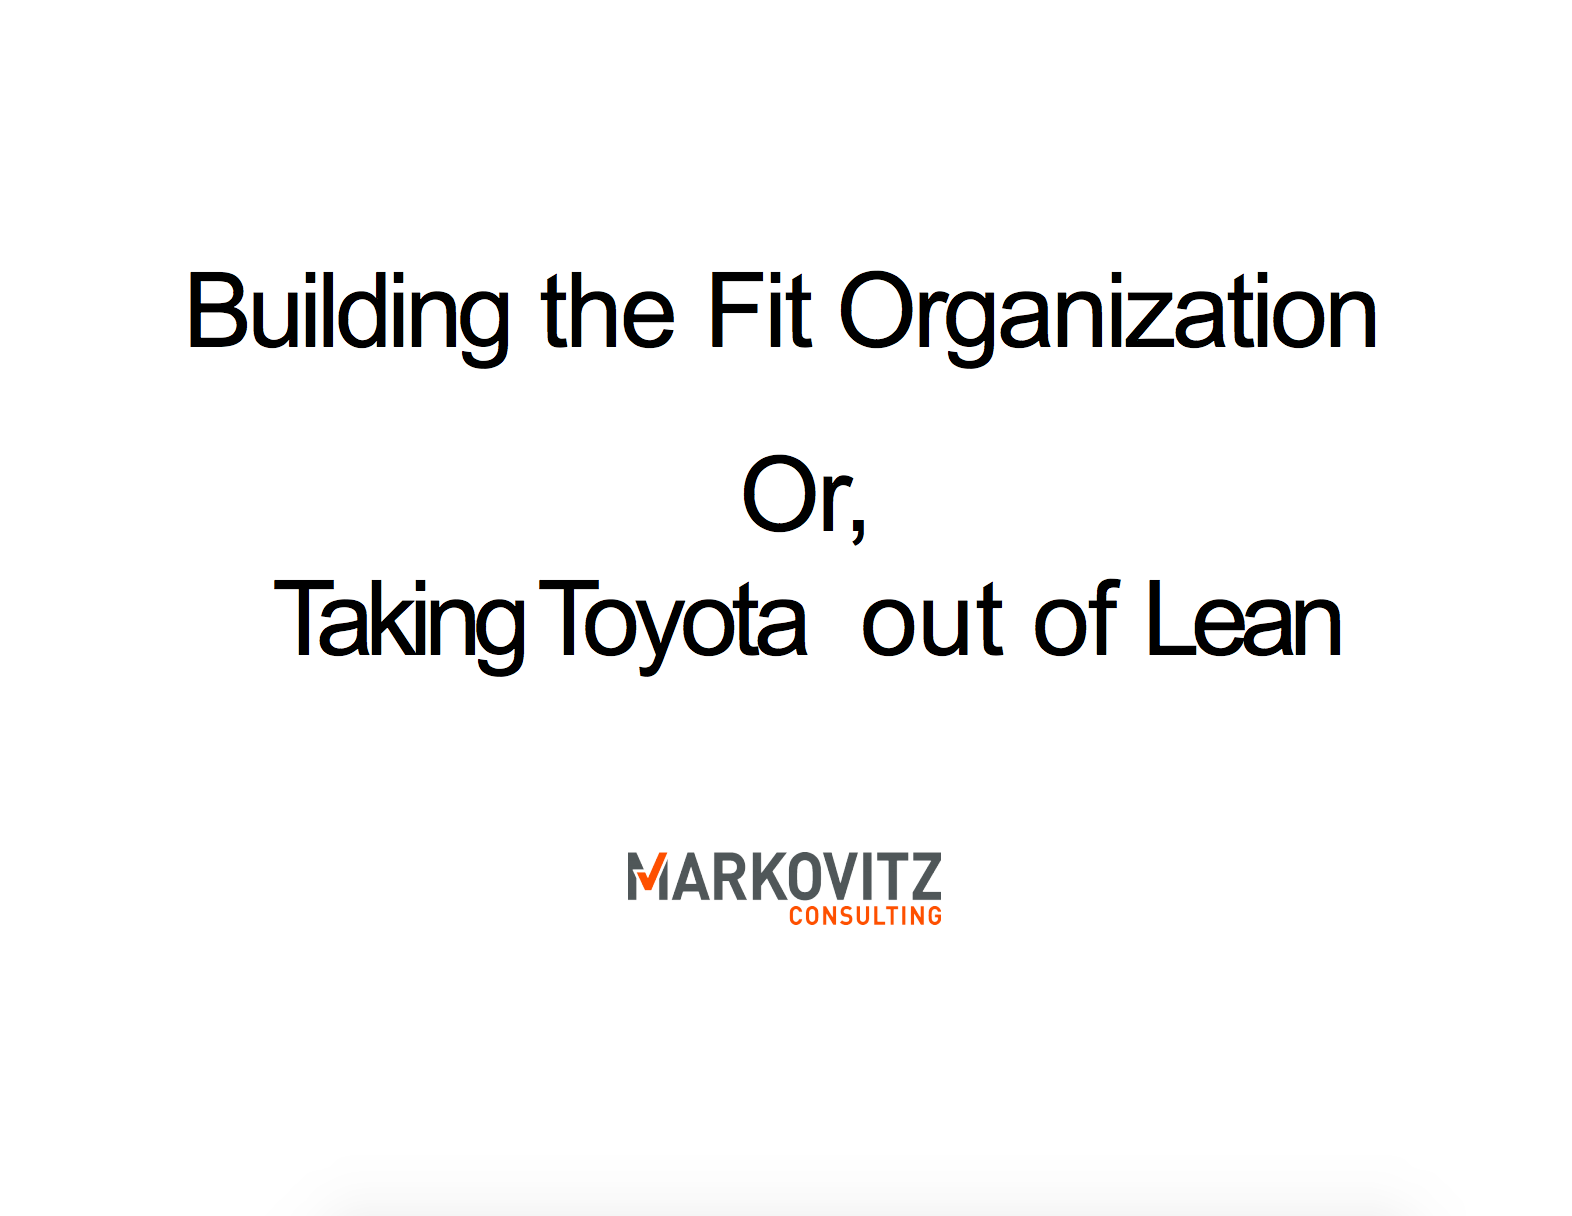 BTOES17 Slide Deck: Dan Markovitz, Building the Fit